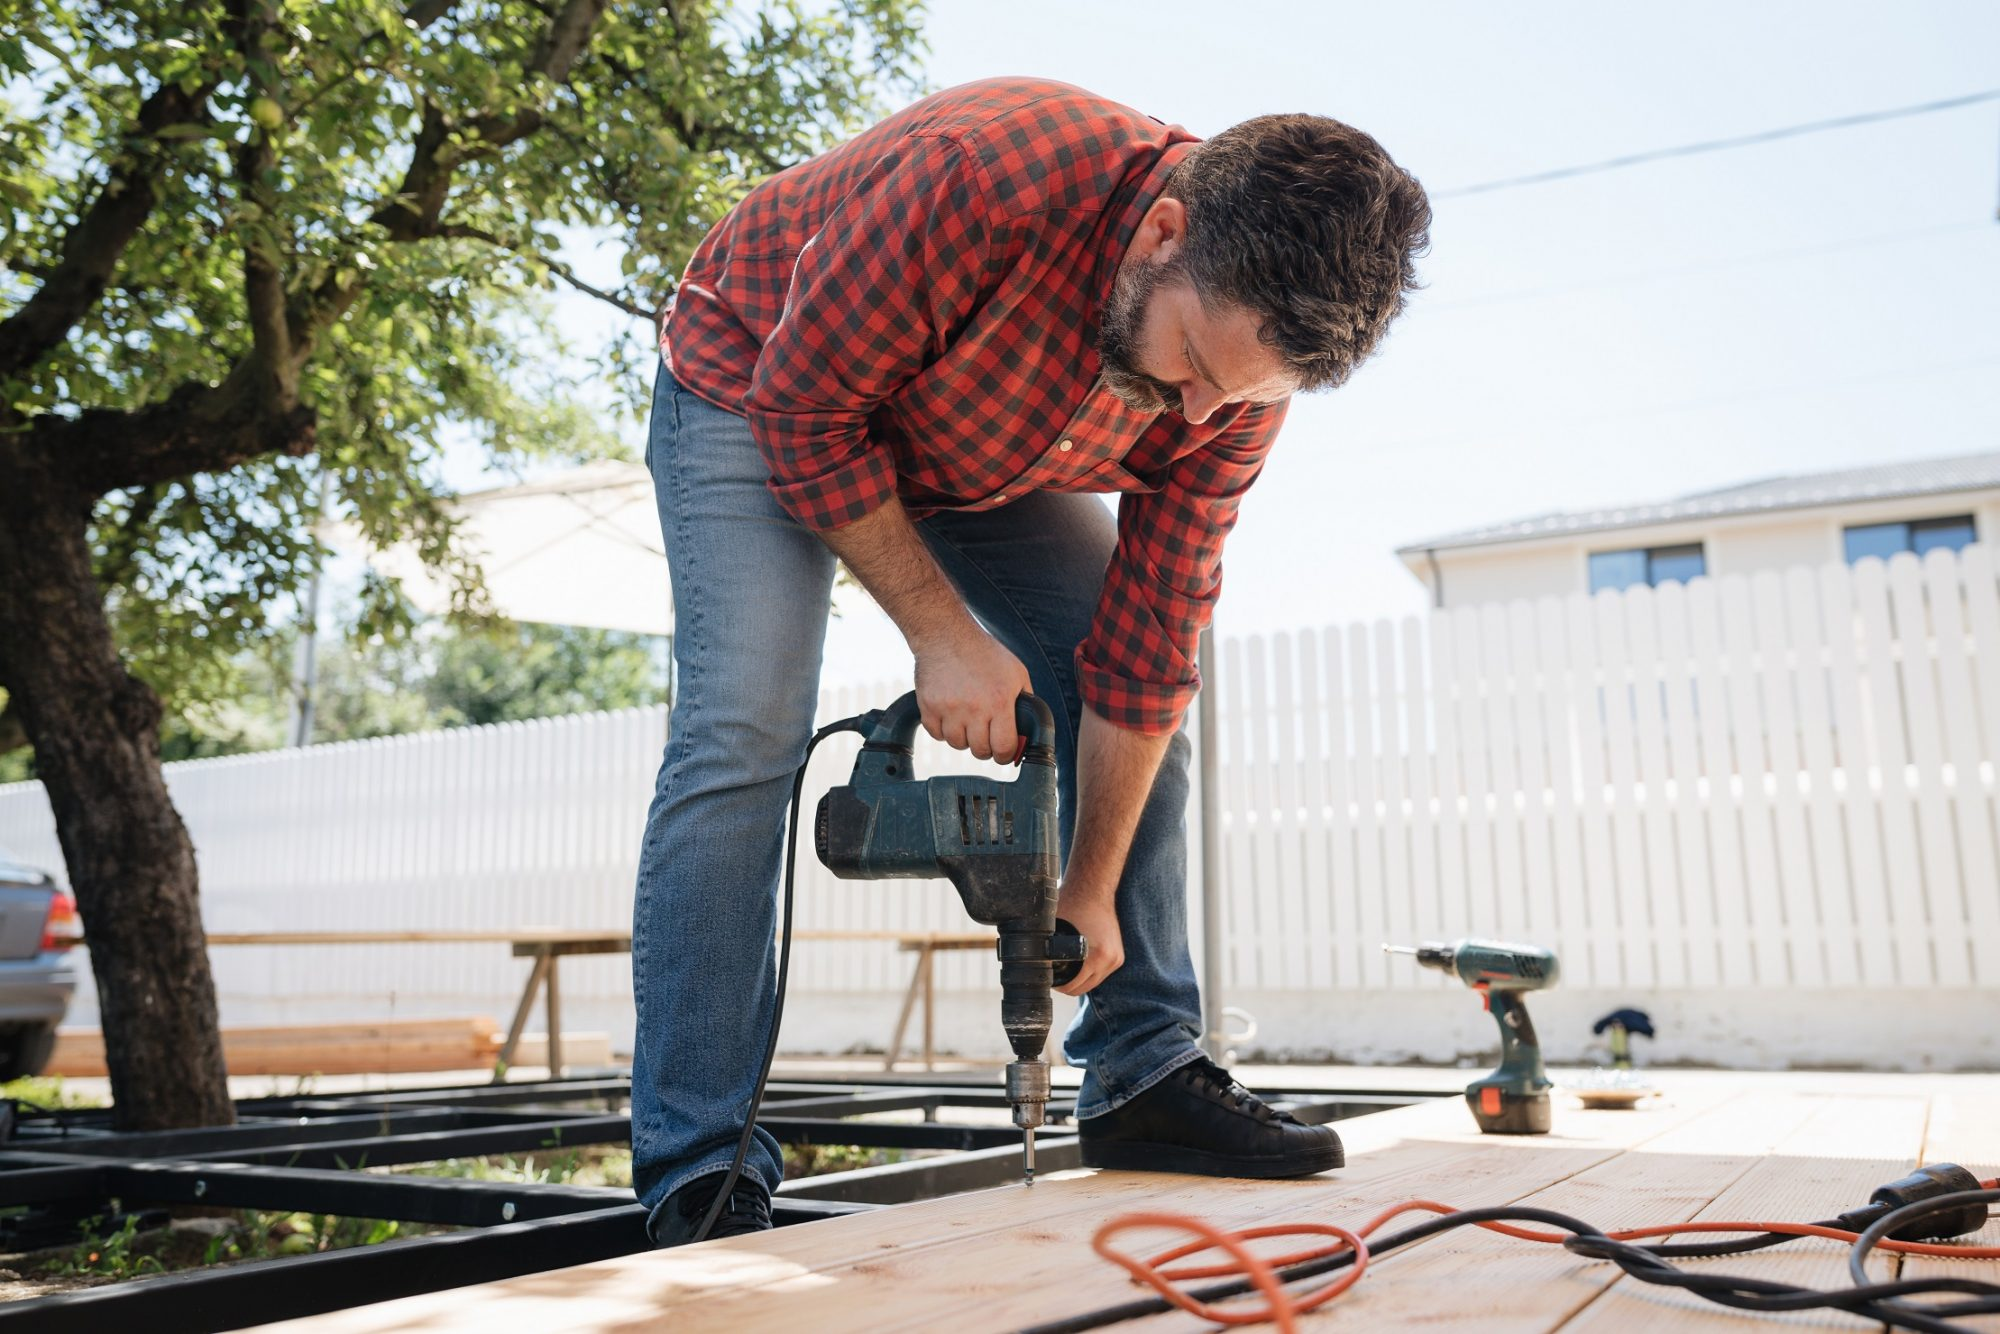 Carpenter installing a wood floor outdoor terrace in new house construction site